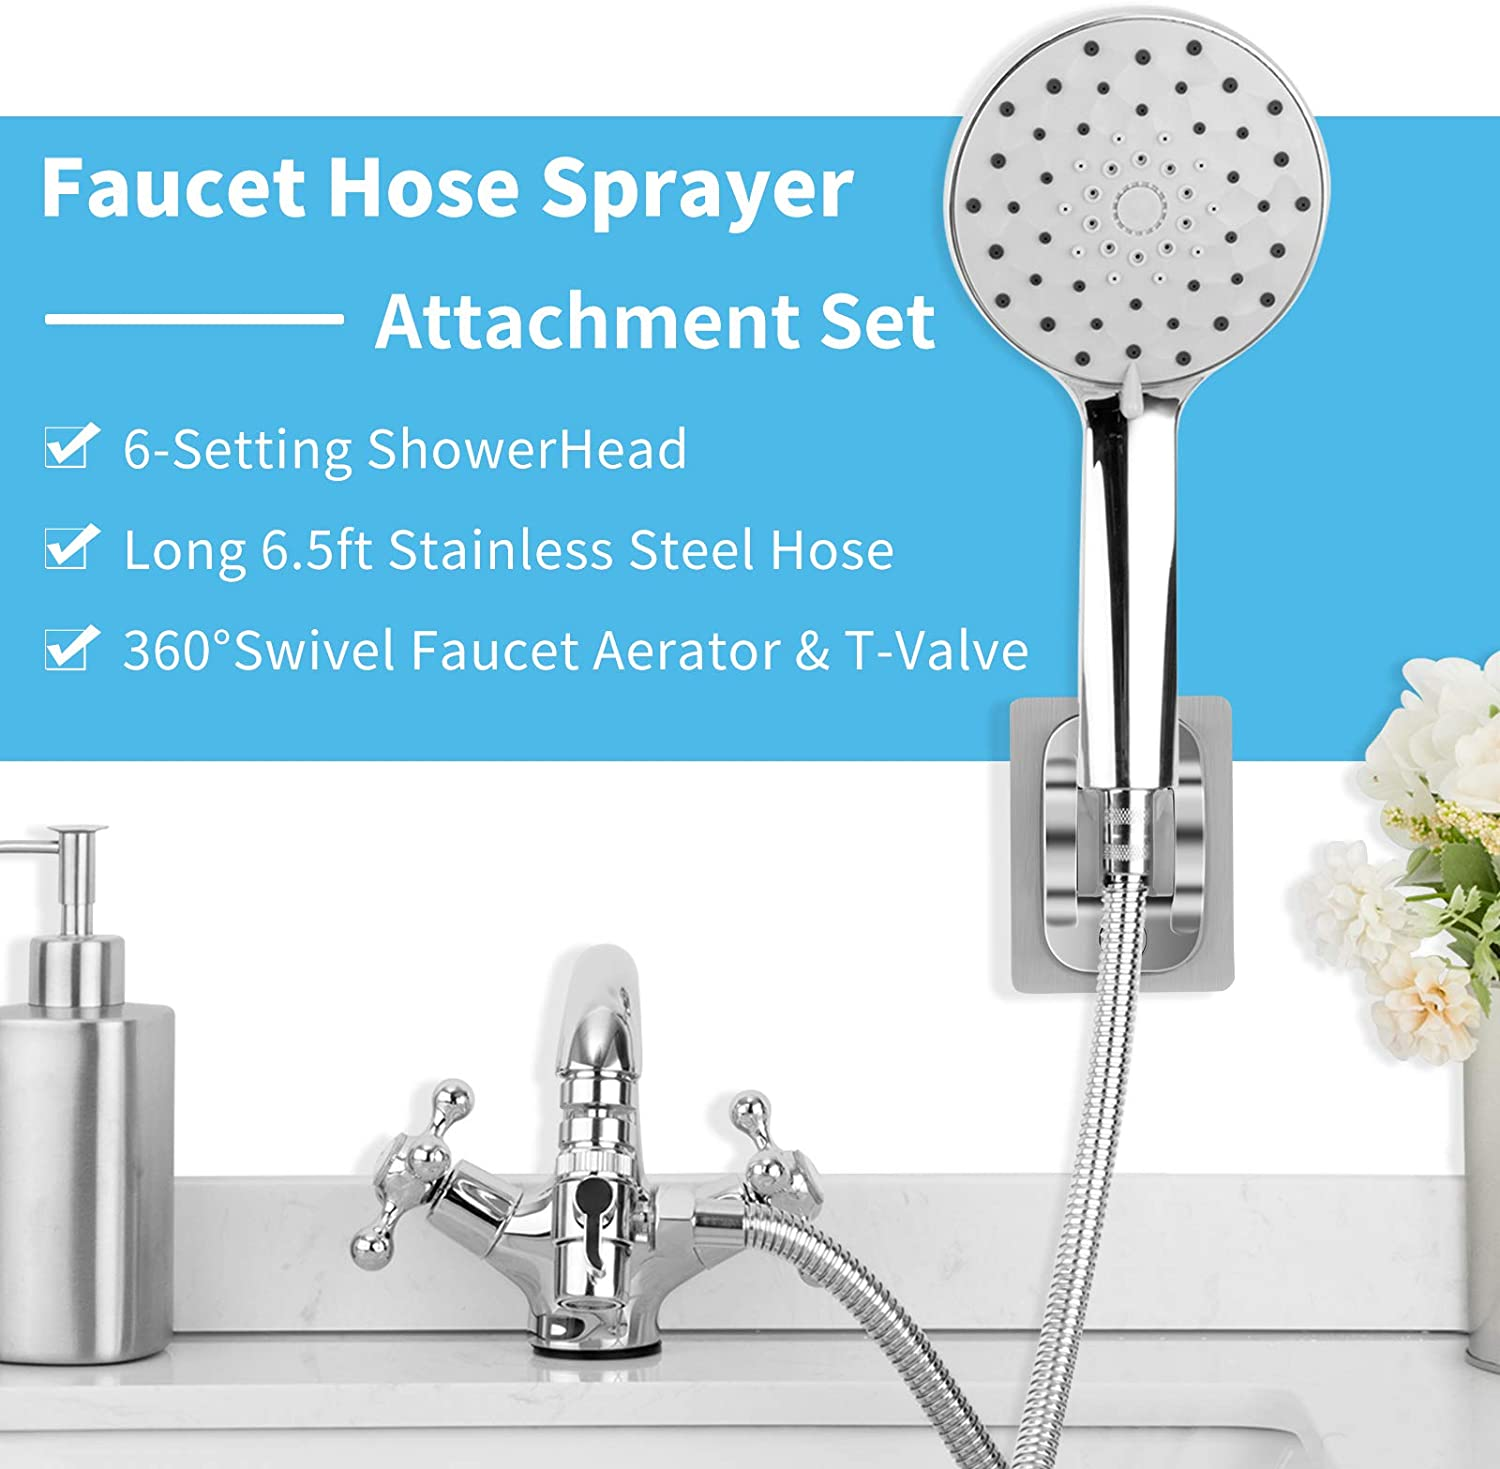 w// 6.5ft Hose /& Kitchen Swivel Faucet Aerator for Pet Bath Hair Washing Elderly Injured Faucet Shower Rinser Extension for Bathroom Bathtub Utility Laundry Tub Sink Faucet Hose Sprayer Attachment